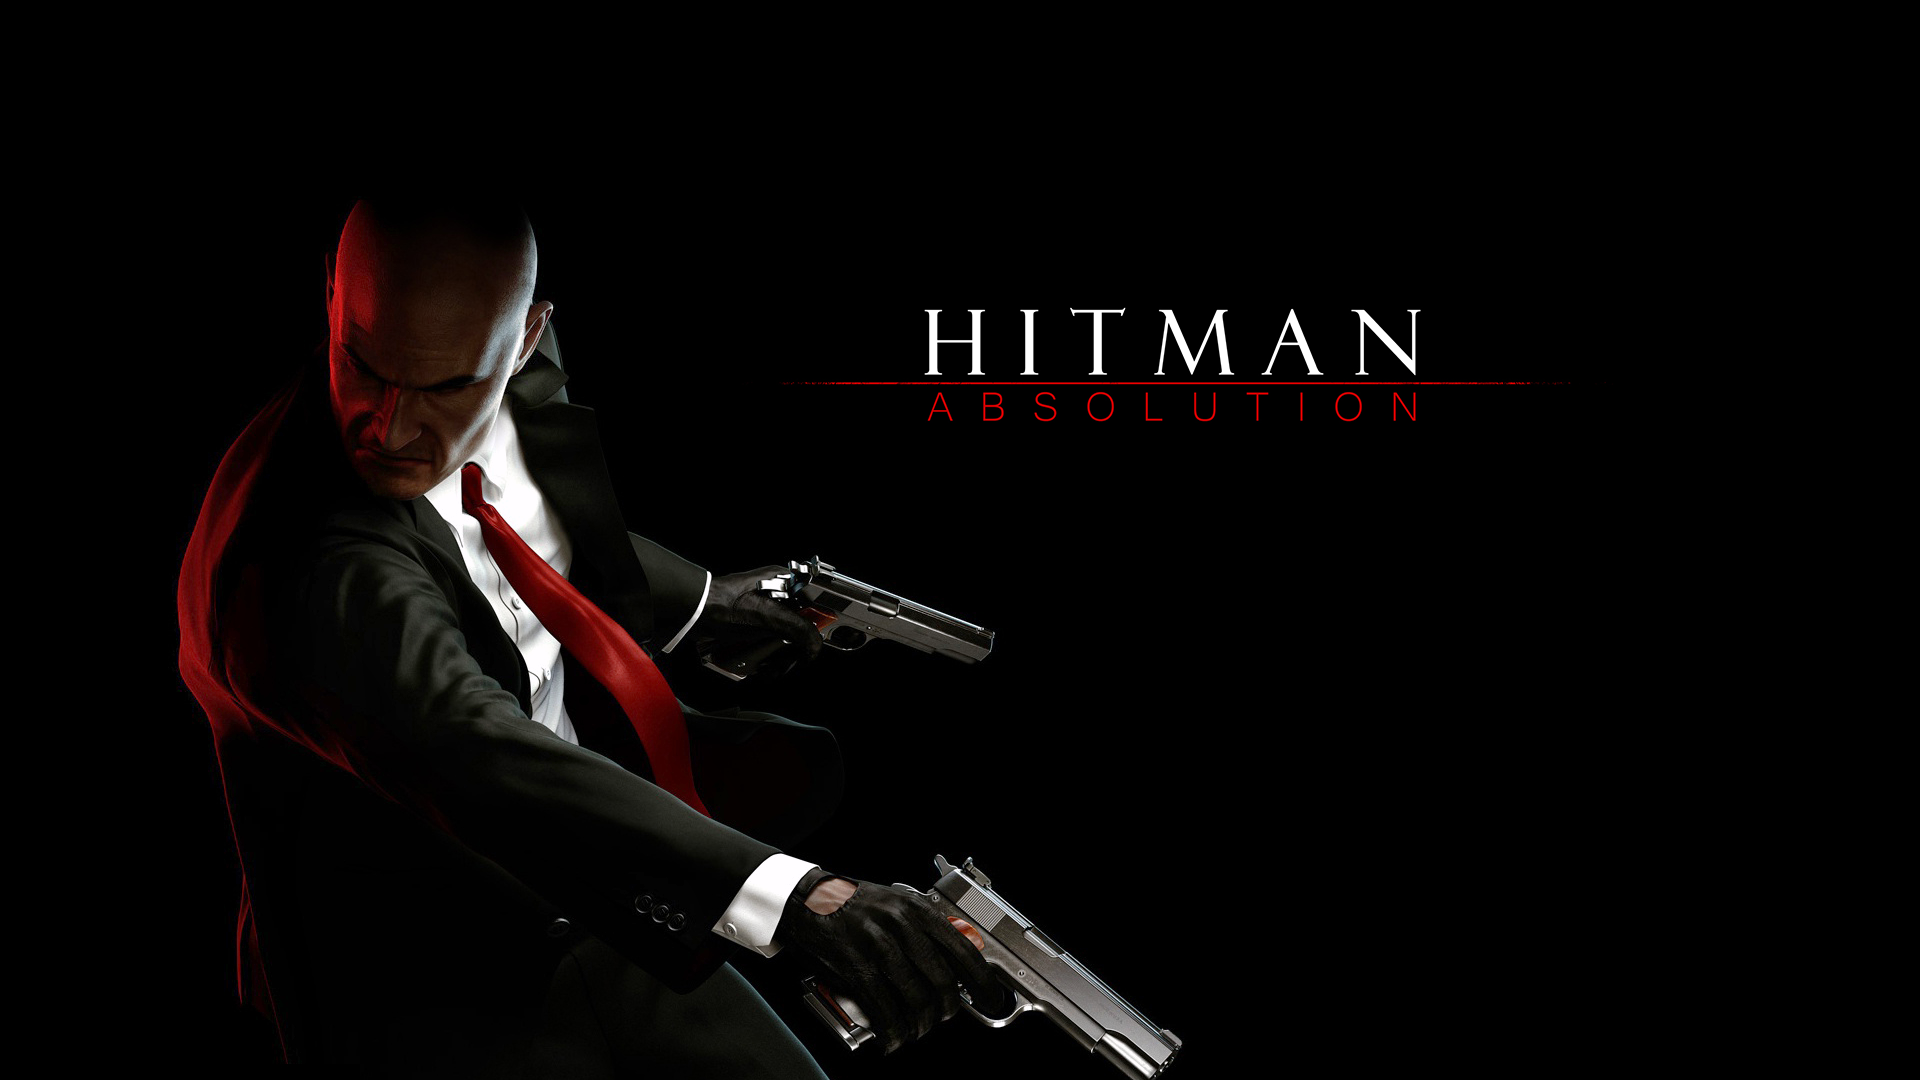 Free Download Hitman Absolution Hd Wallpaper 2135 1920x1200 For